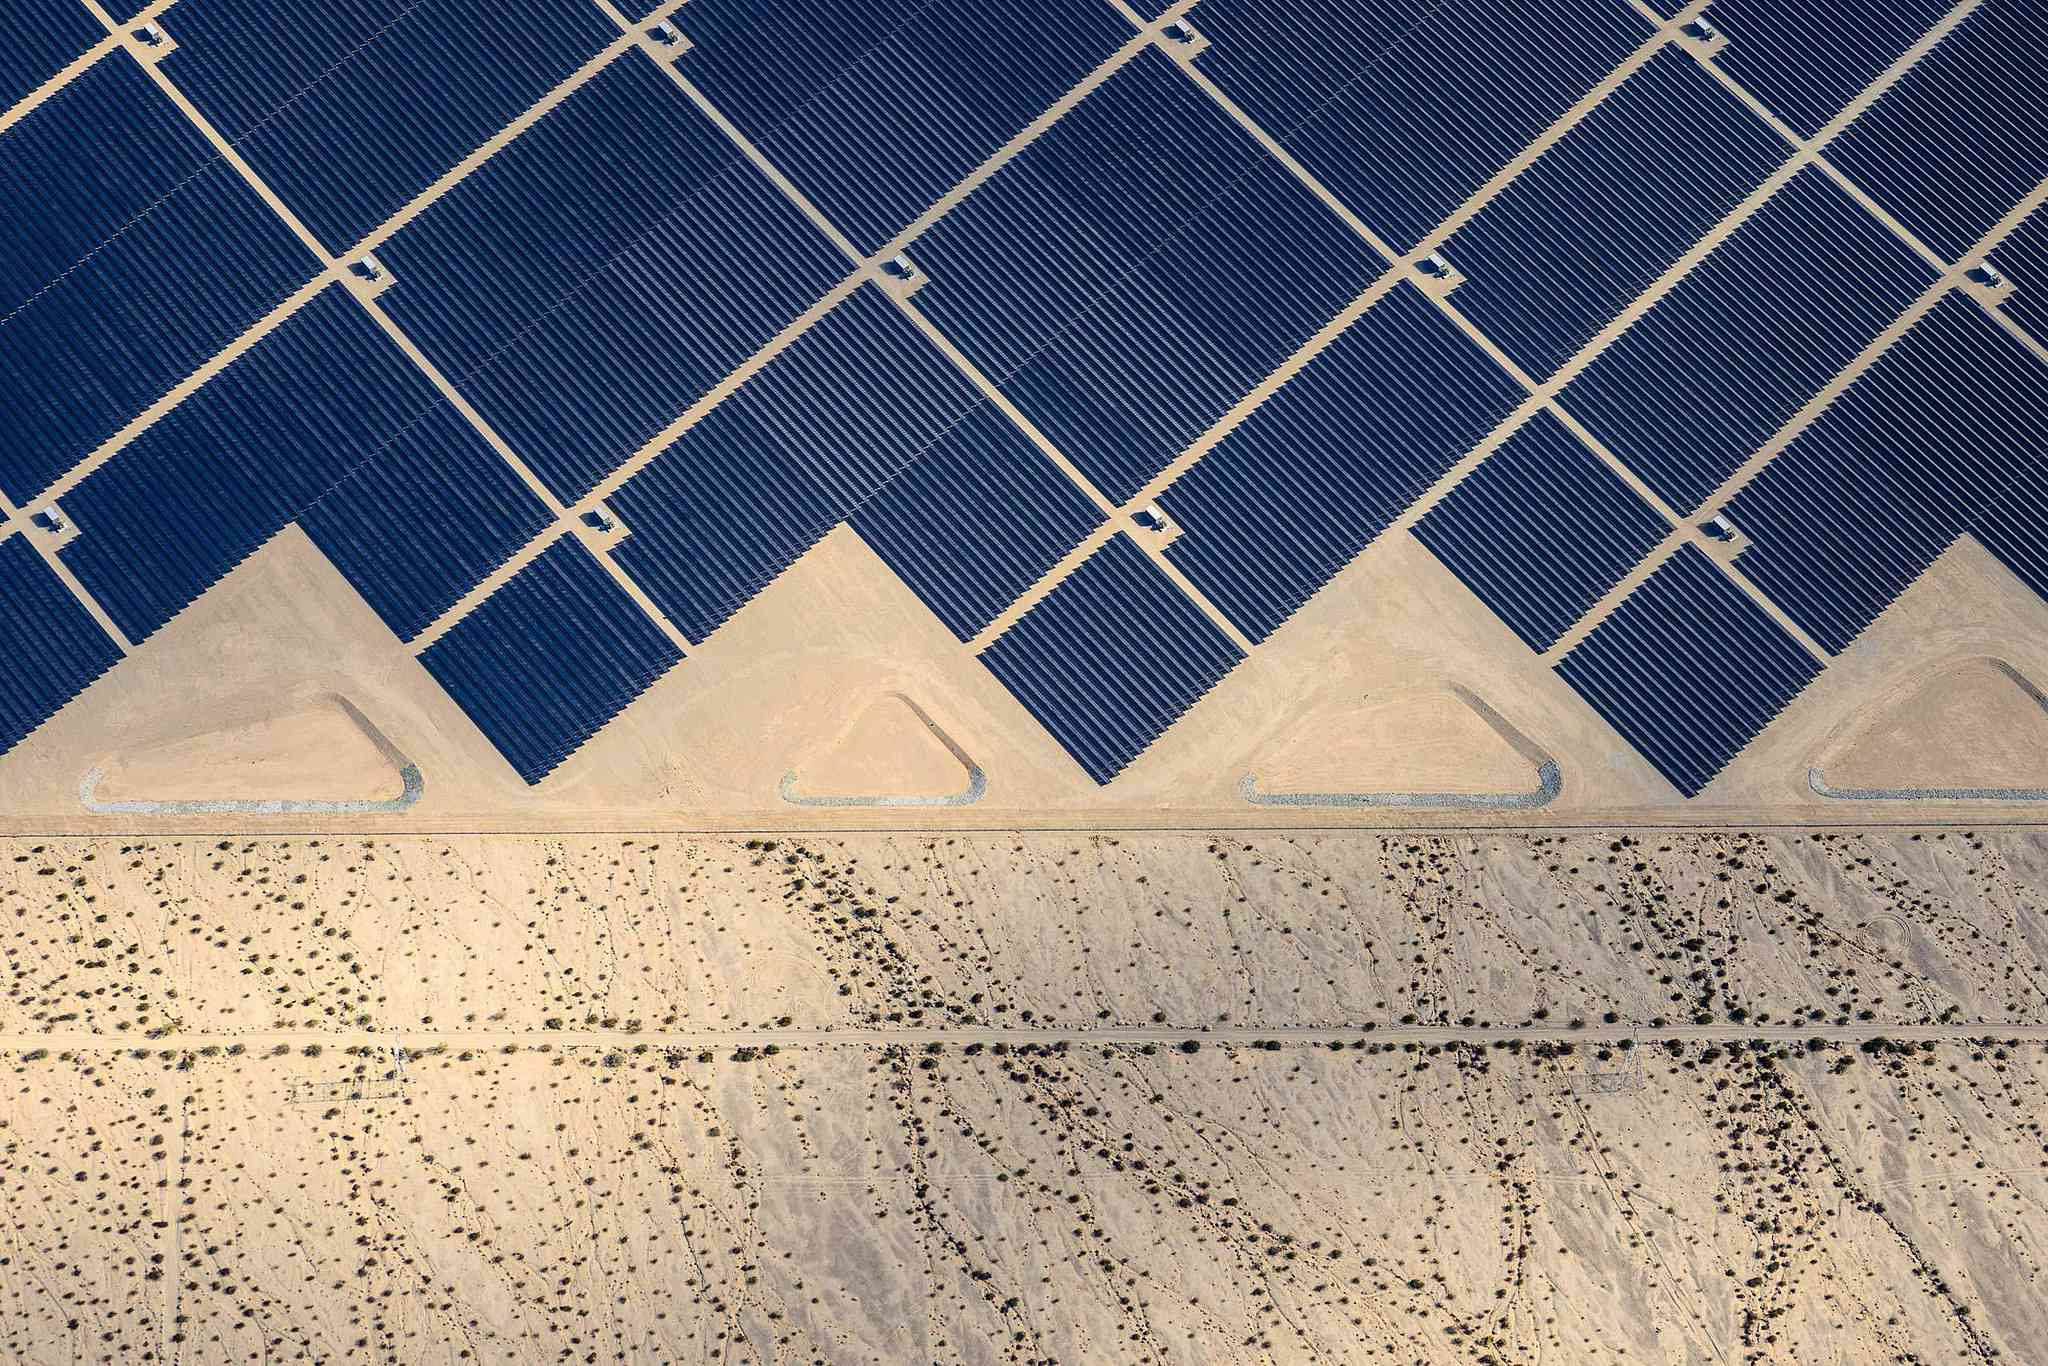 The Desert Sunlight Solar Farm in California's Mojave Desert uses approximately 8.8 million panels and generates 500 MW of electricity.